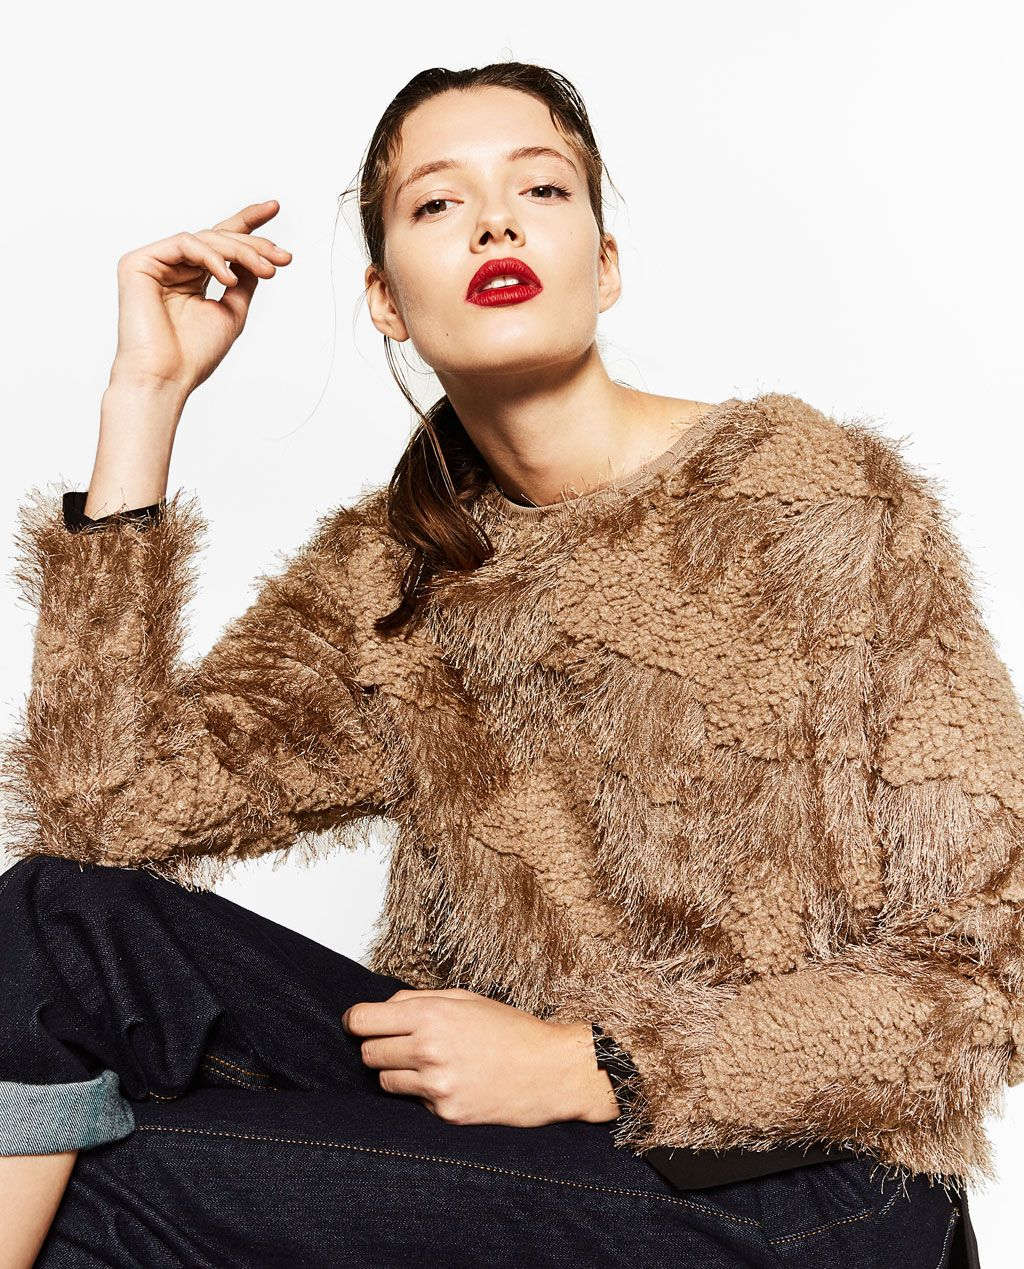 WINTER 2016 IS HERE AND FASHION CAN MAKE A MAJOR IMPACT ON THE SEASON. PARKAS ARE A BIG THING. FUR CAN BE A GREAT STATEMENT PIECE. SOME INDI...